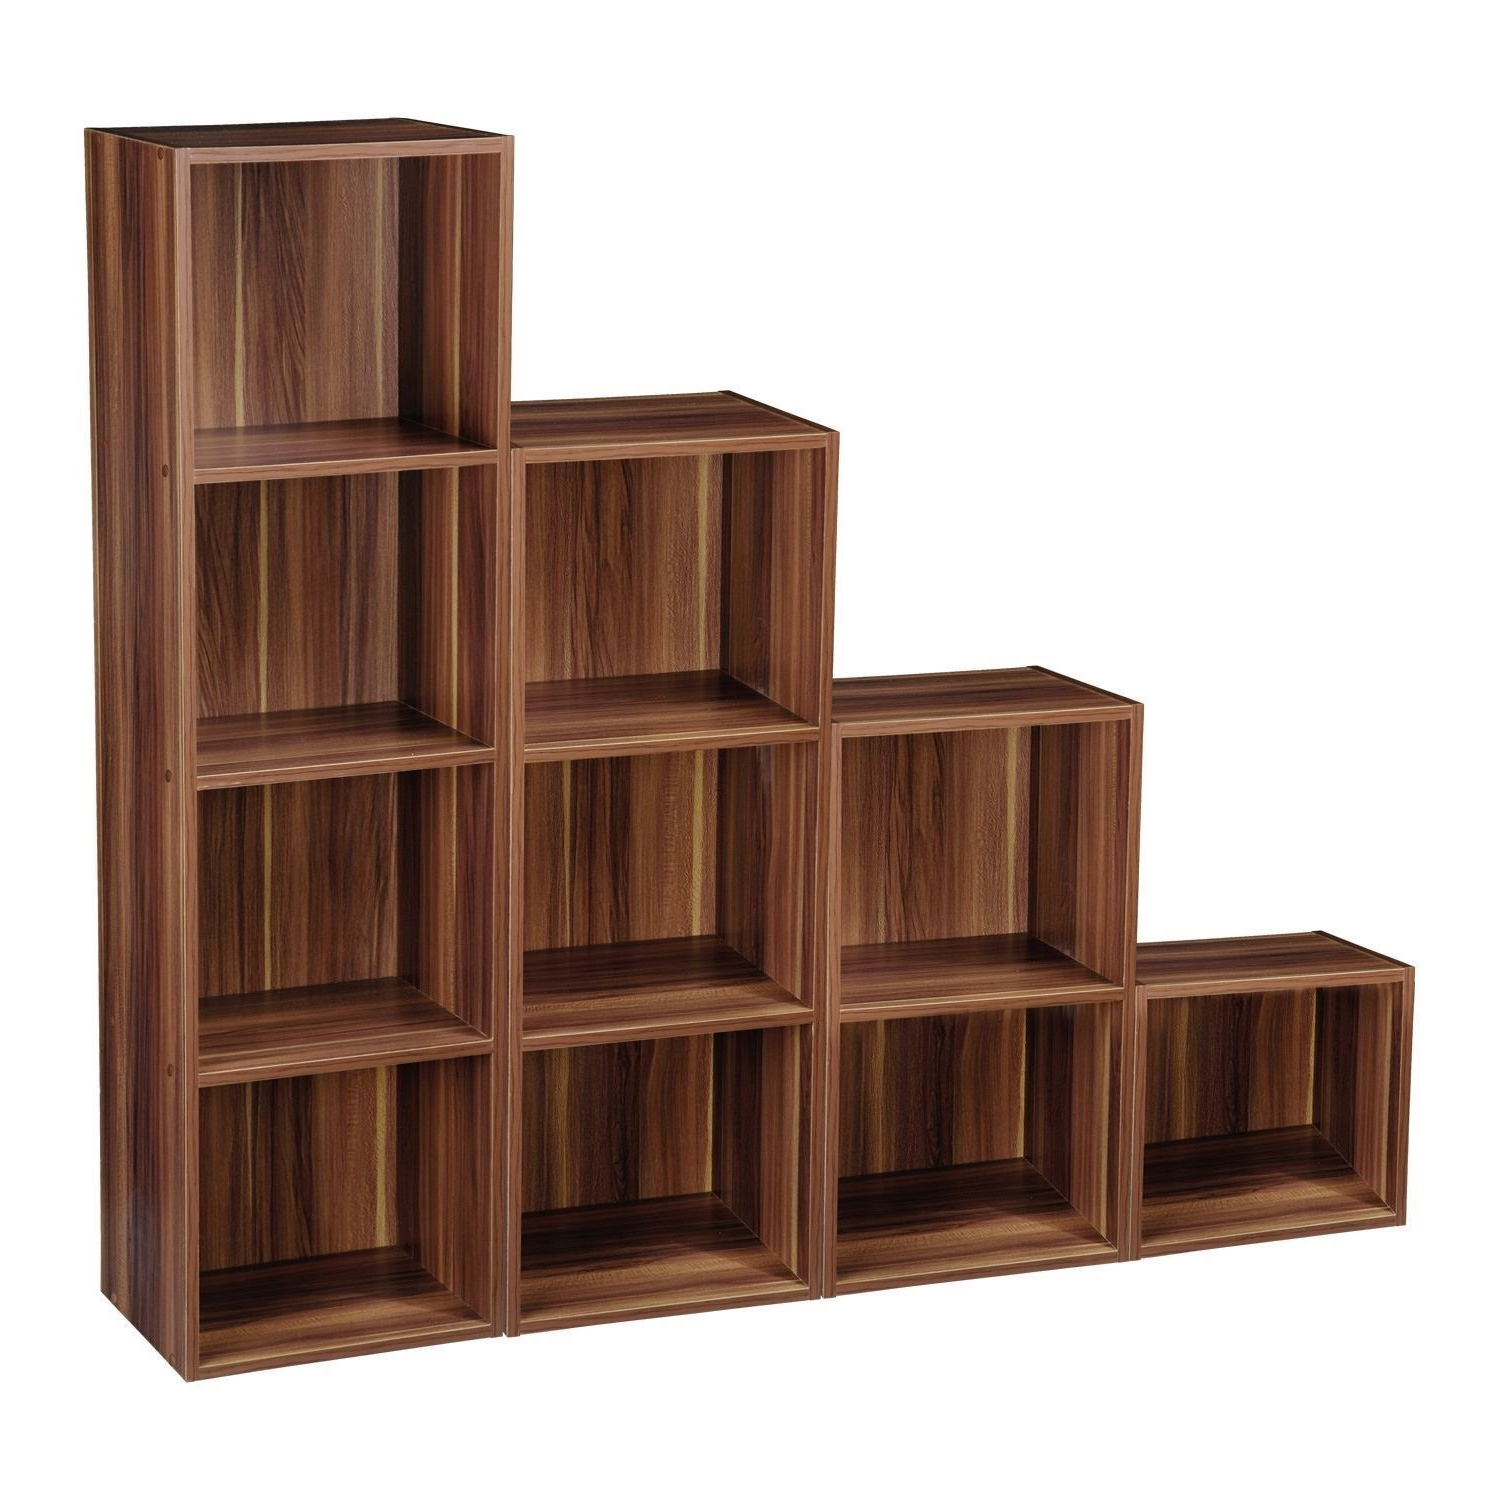 Well Known 2 4 Tier Wooden Bookcase Shelving Bookshelf Storage Furniture Cube In Wooden Bookshelves (View 9 of 15)